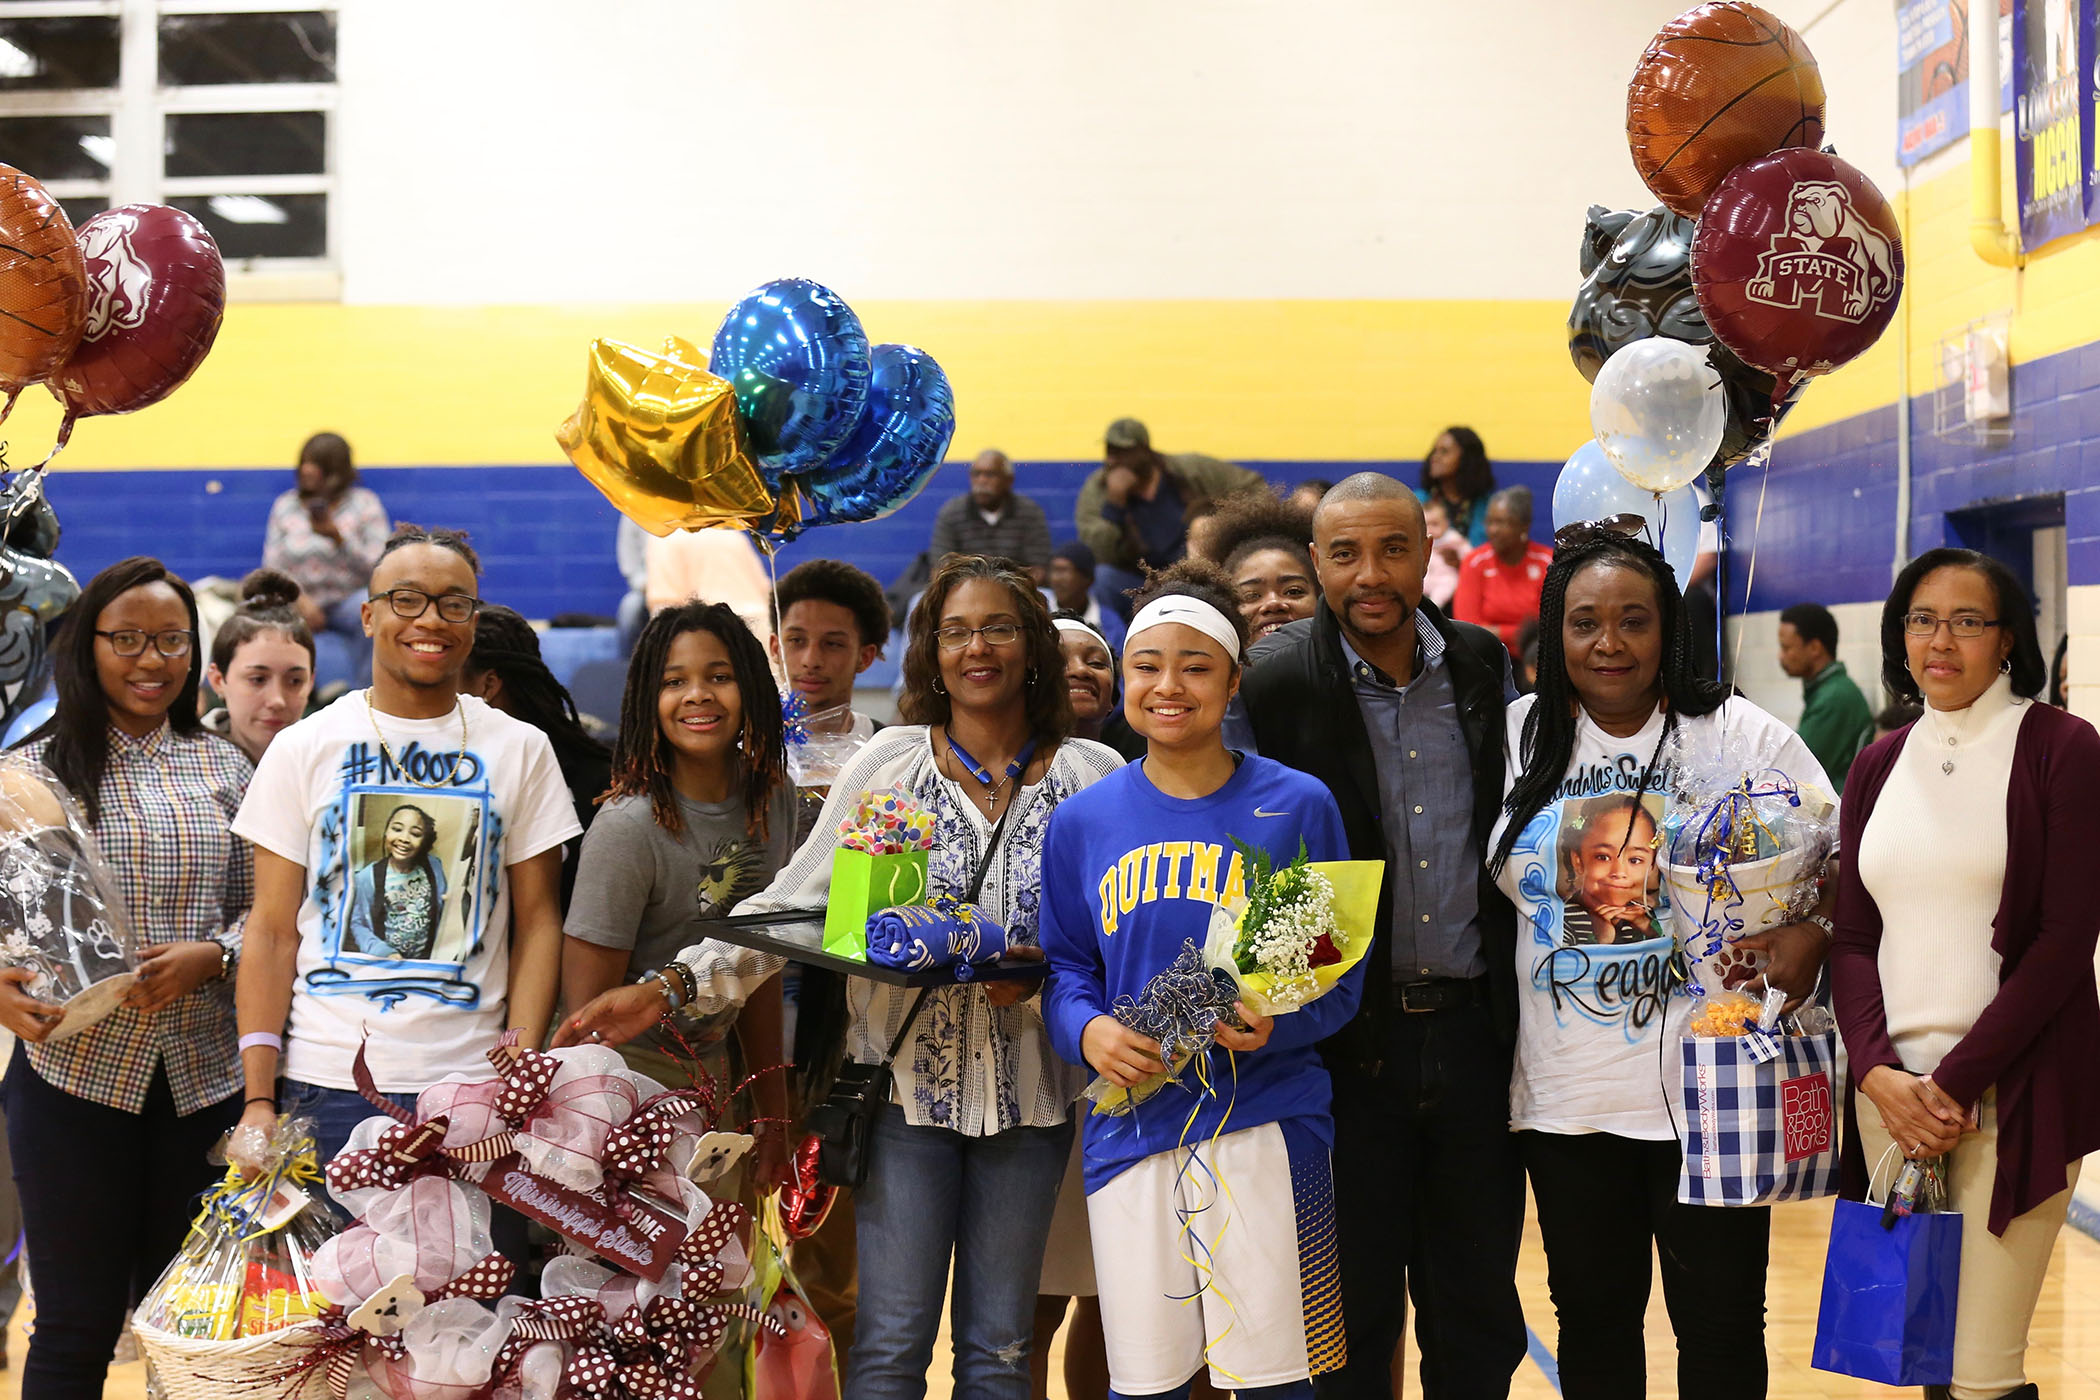 Reagan stands with her family and friends on Lady Panther Senior Night.